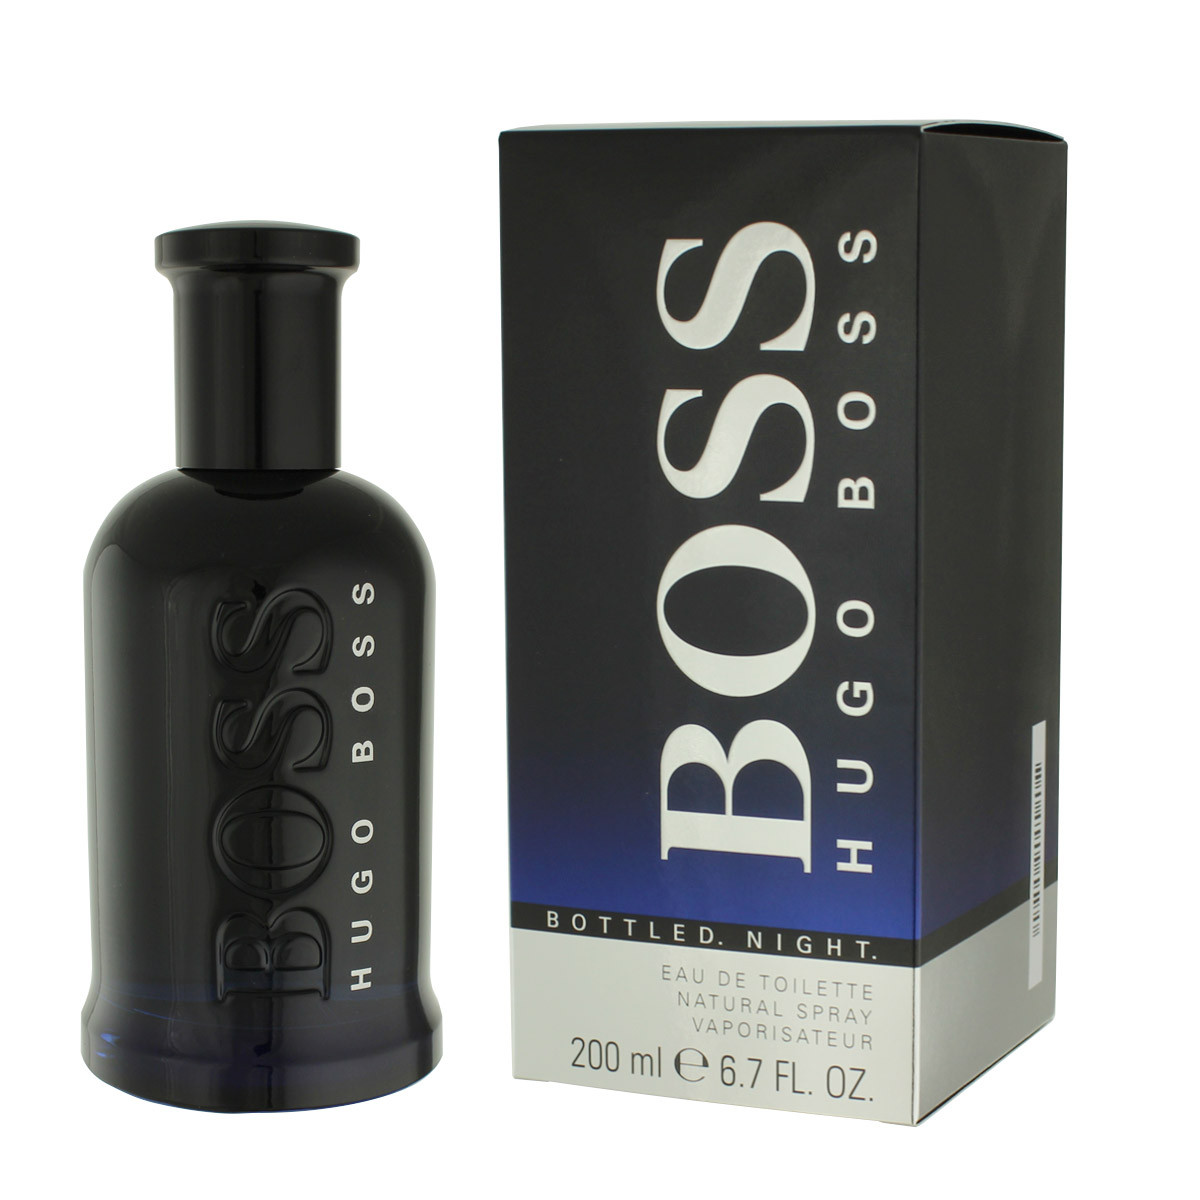 82578c7b9db944 Hugo Boss Bottled Night Eau De Toilette 200 ml (man) - Bottled Night ...